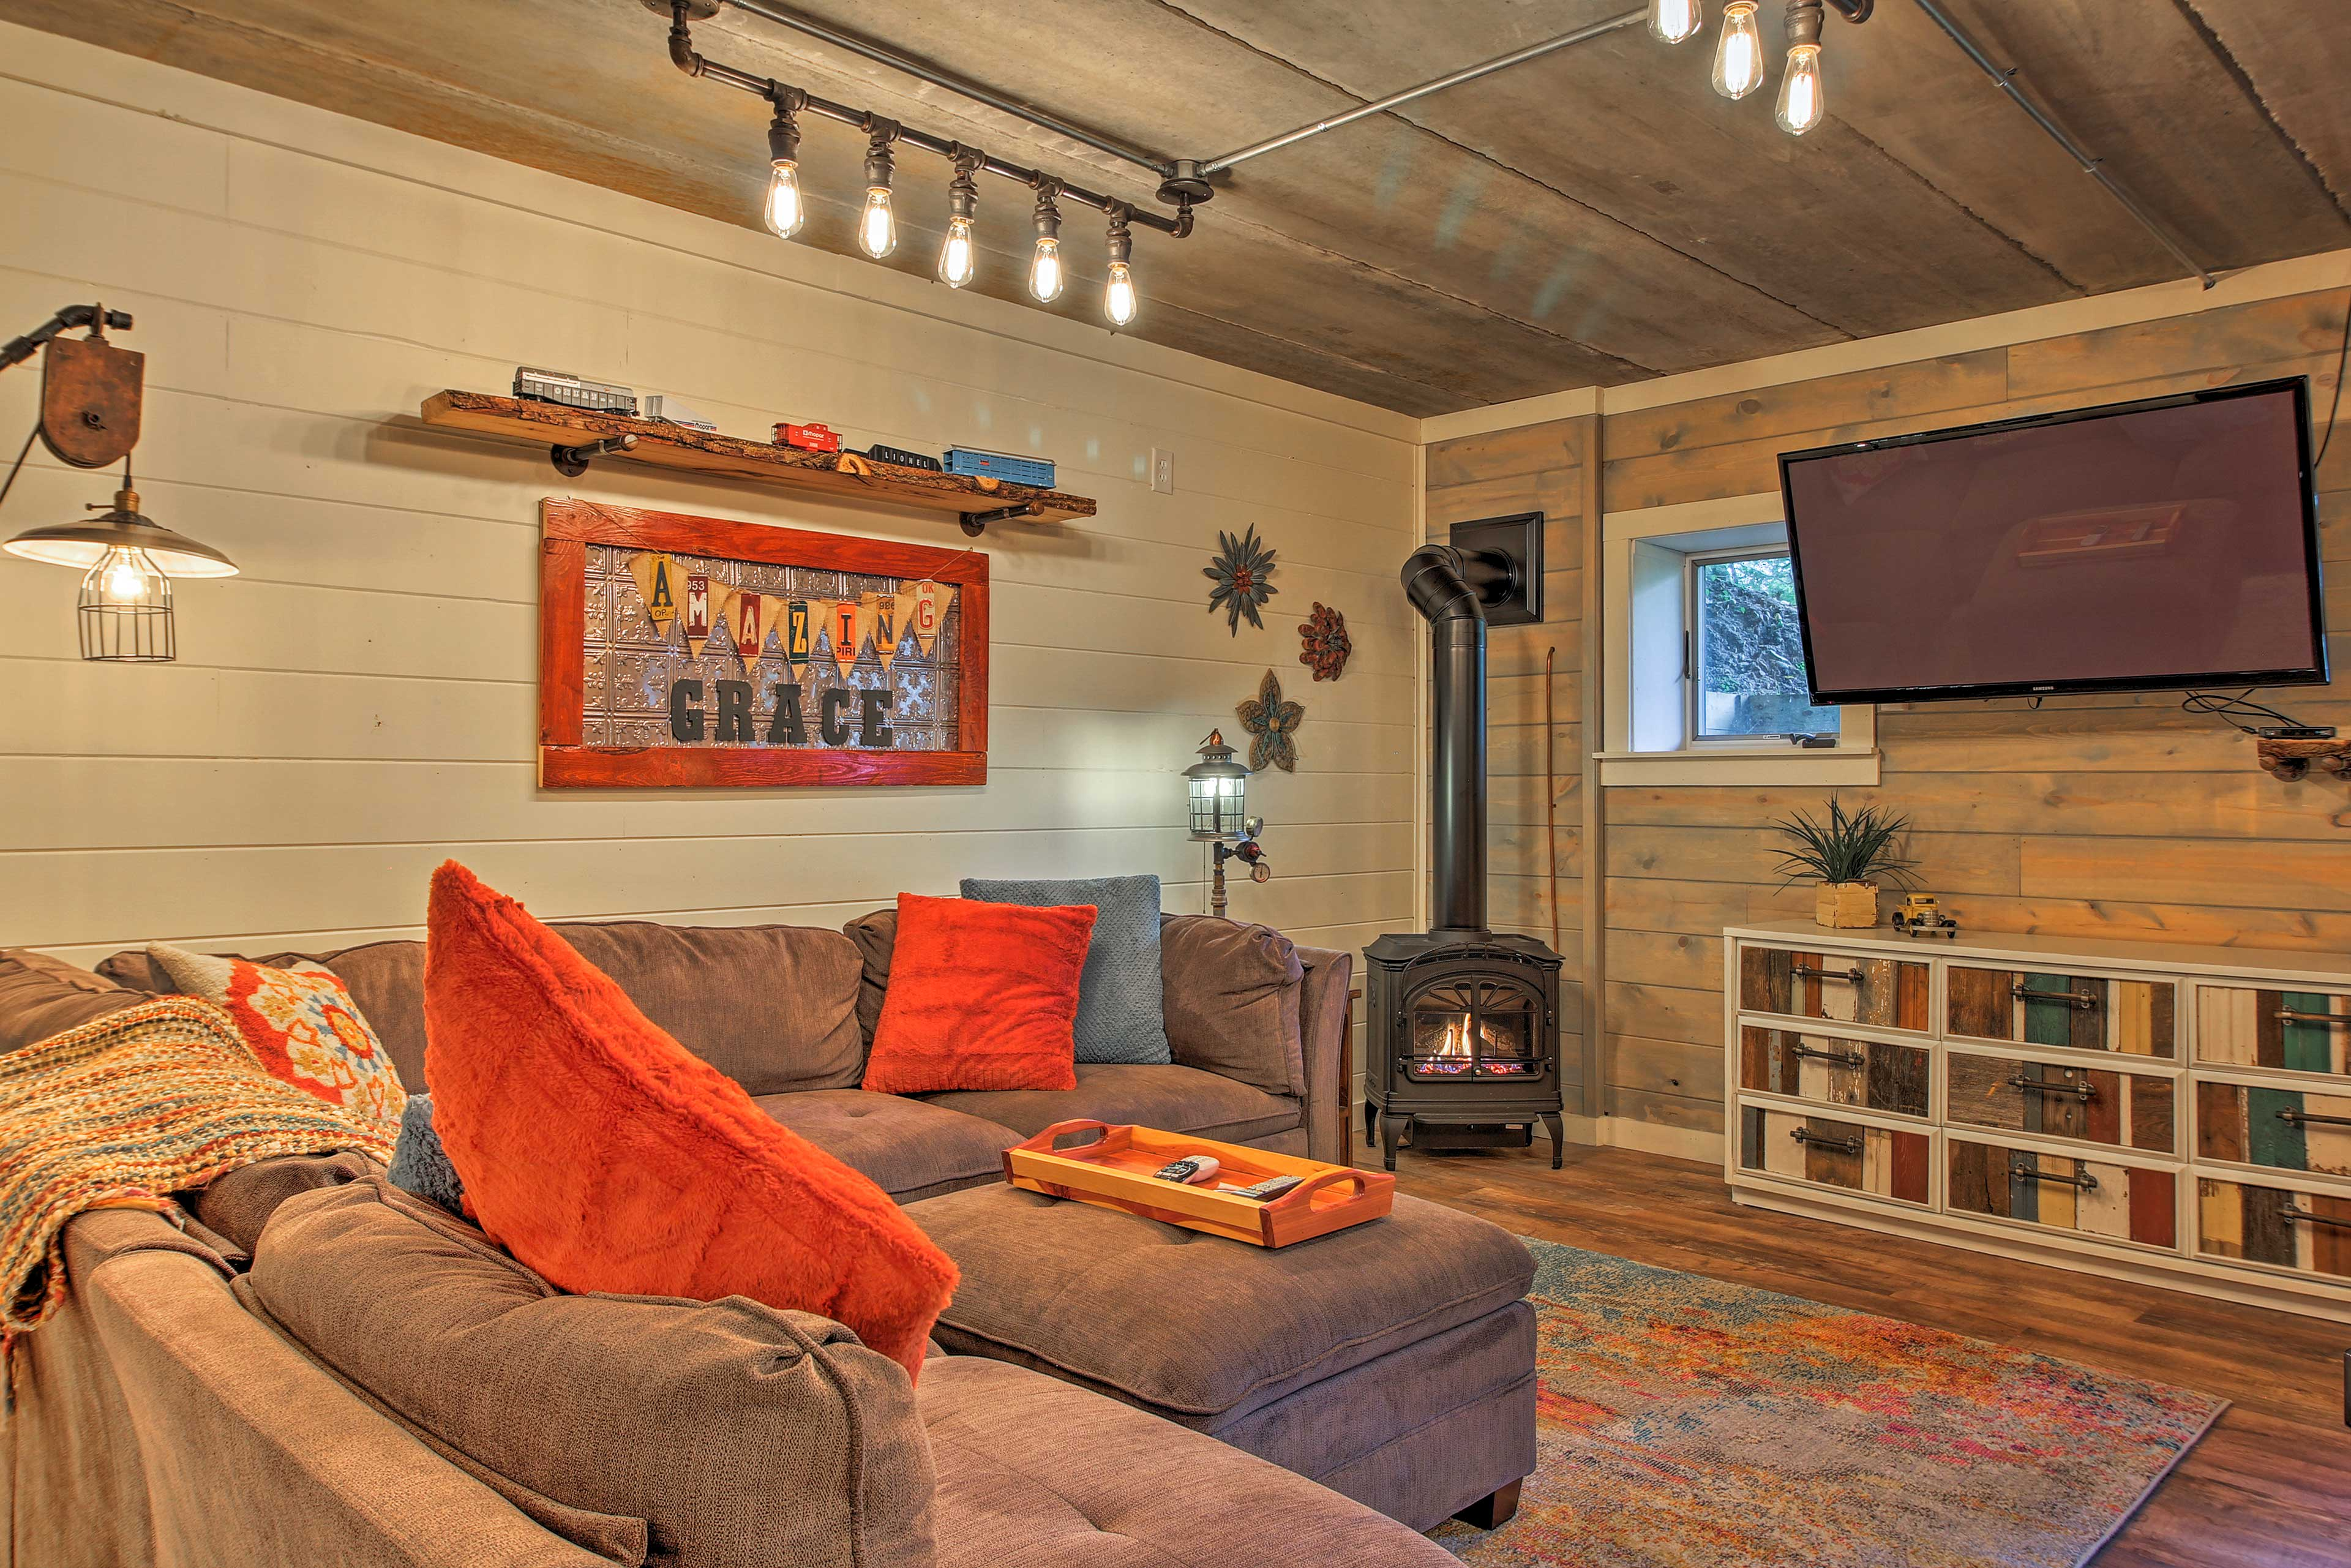 The 3,500-square-foot lake home offers guests 2 open living spaces.